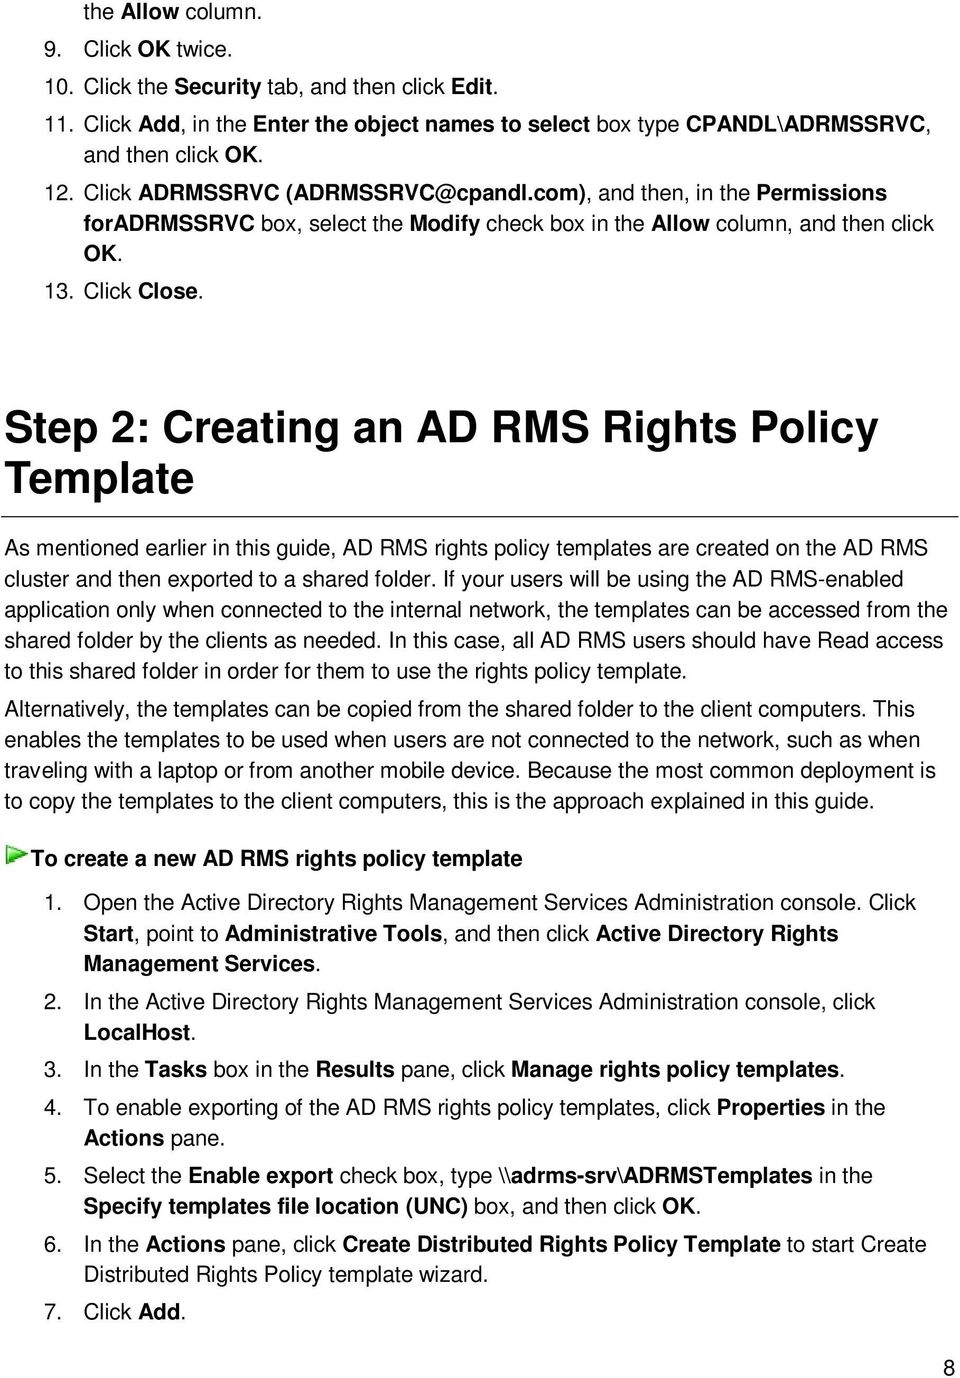 Step 2: Creating an AD RMS Rights Policy Template As mentioned earlier in this guide, AD RMS rights policy templates are created on the AD RMS cluster and then exported to a shared folder.